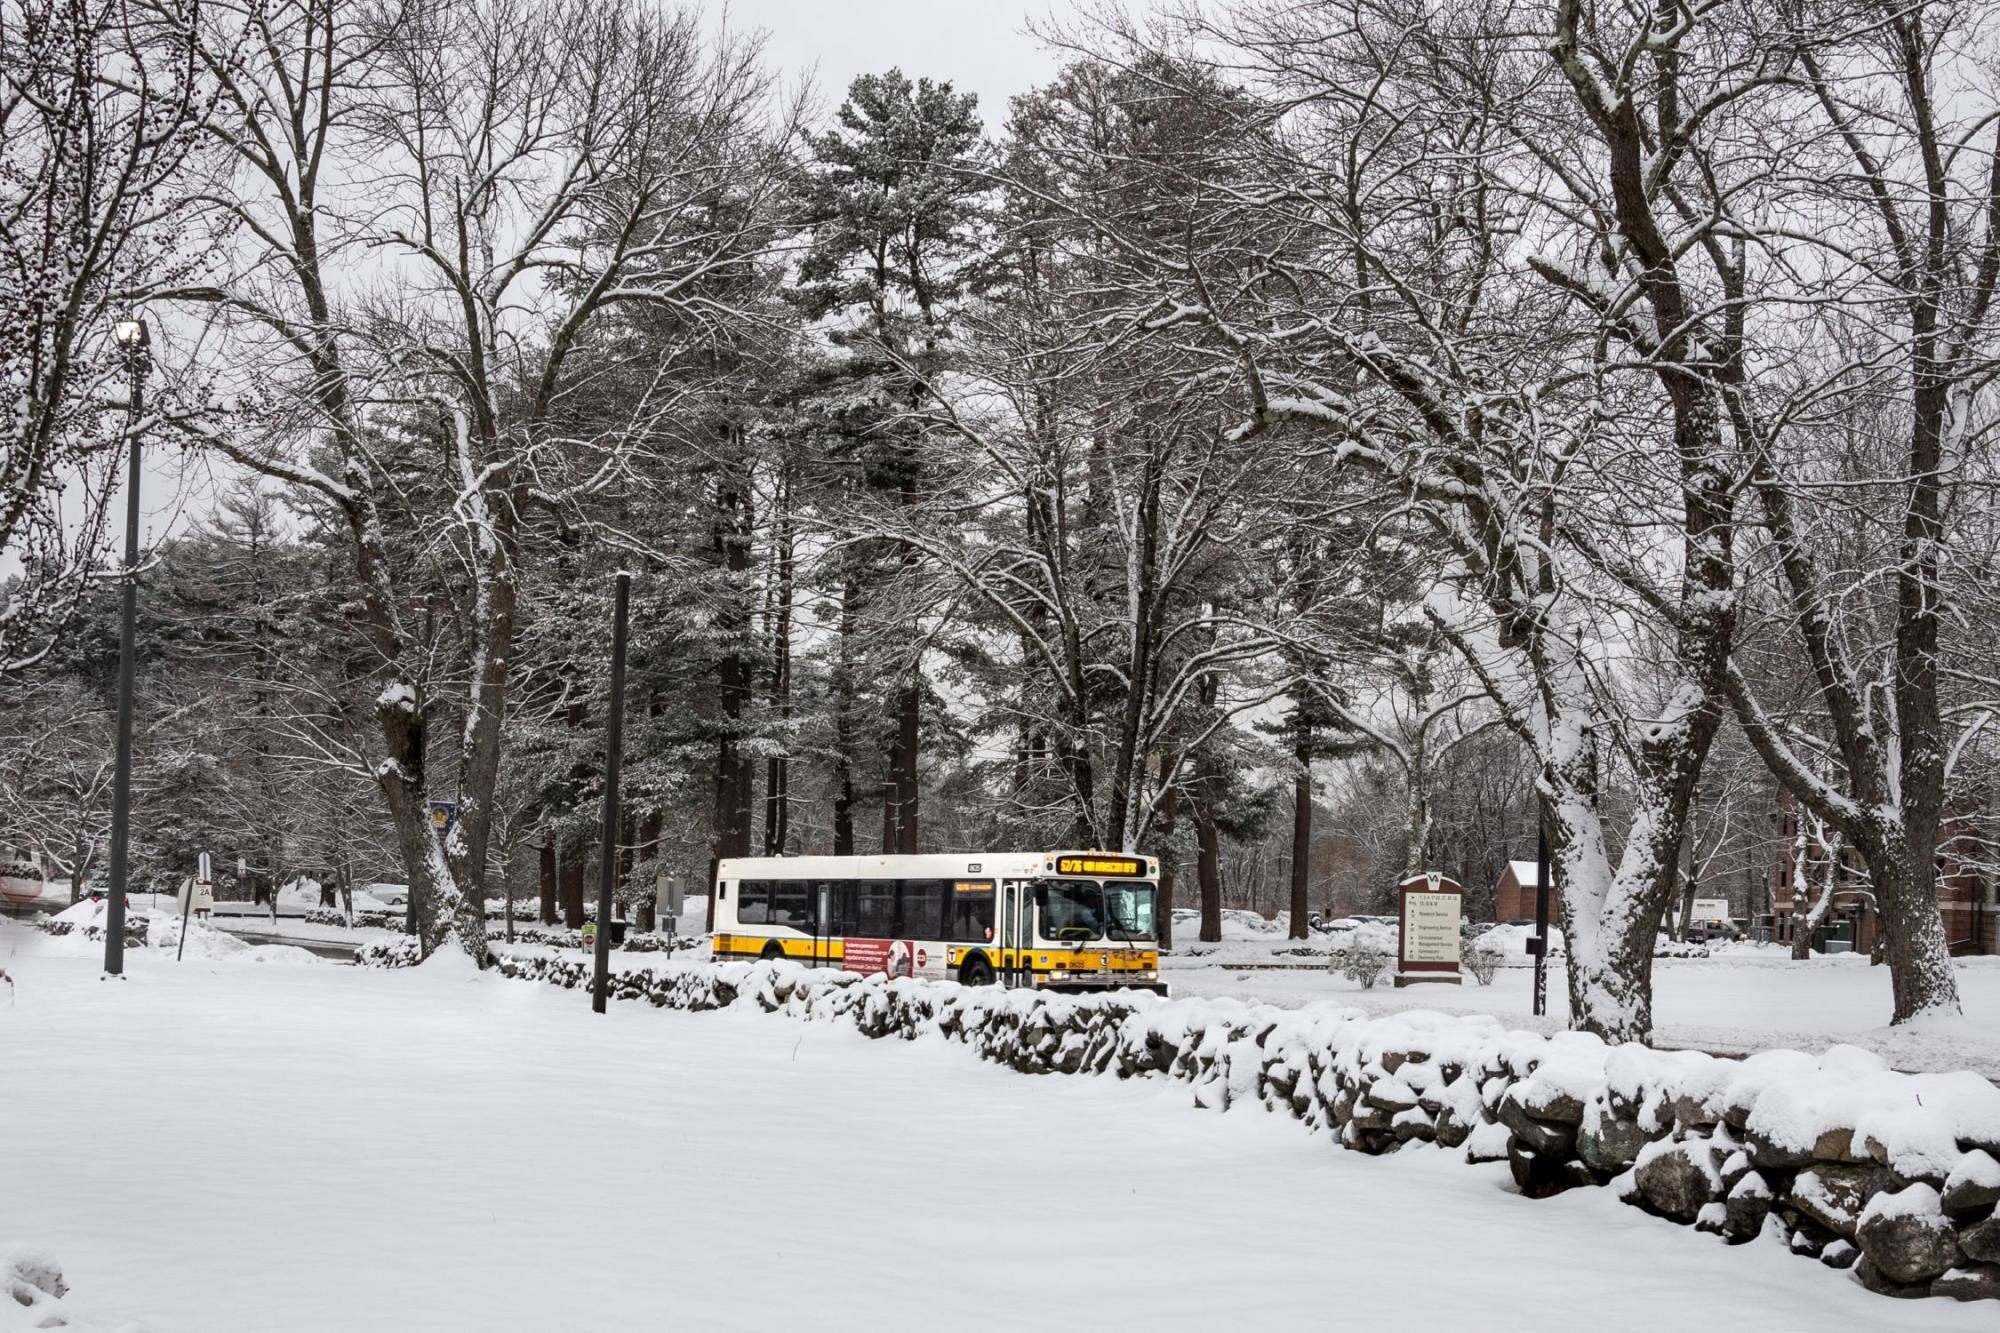 A Route 62/76 bus travels amid snow-covered landscape